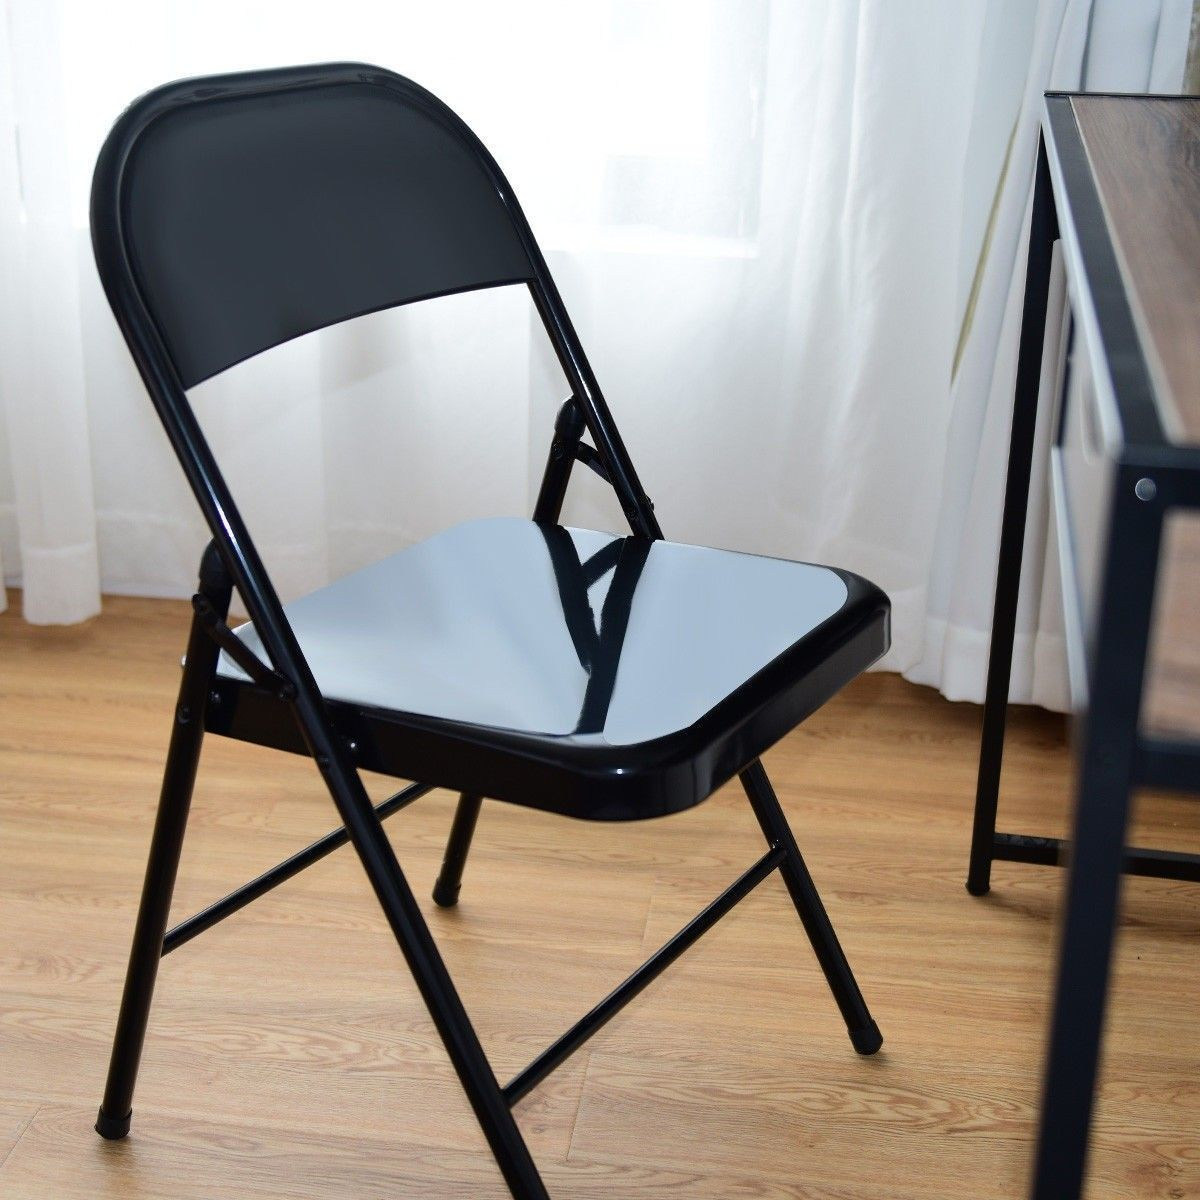 Armless Folding Chair Posture Seat Singapore Set Of 4 Steel Frame Heavy Duty Chairs Furniture